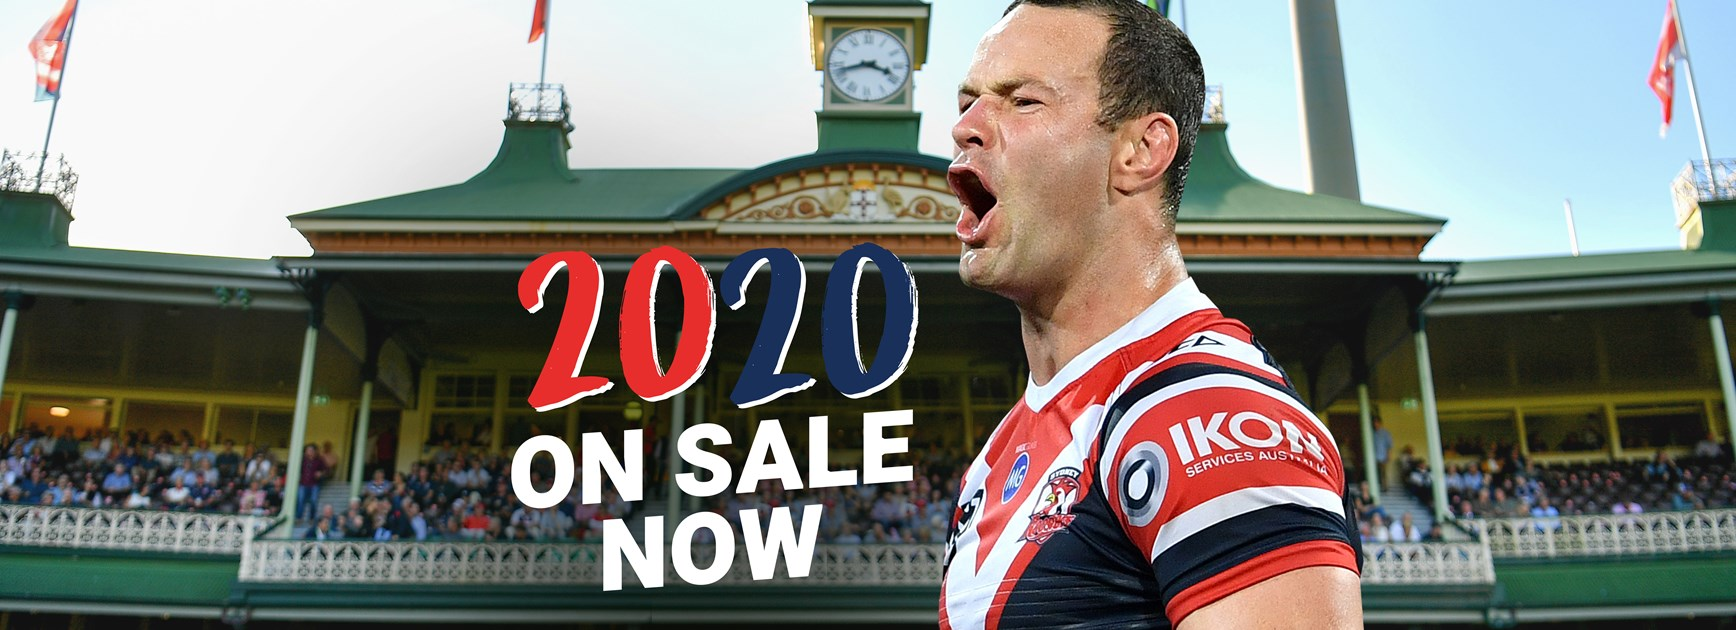 Tickets To SCG Home Games On Sale Now